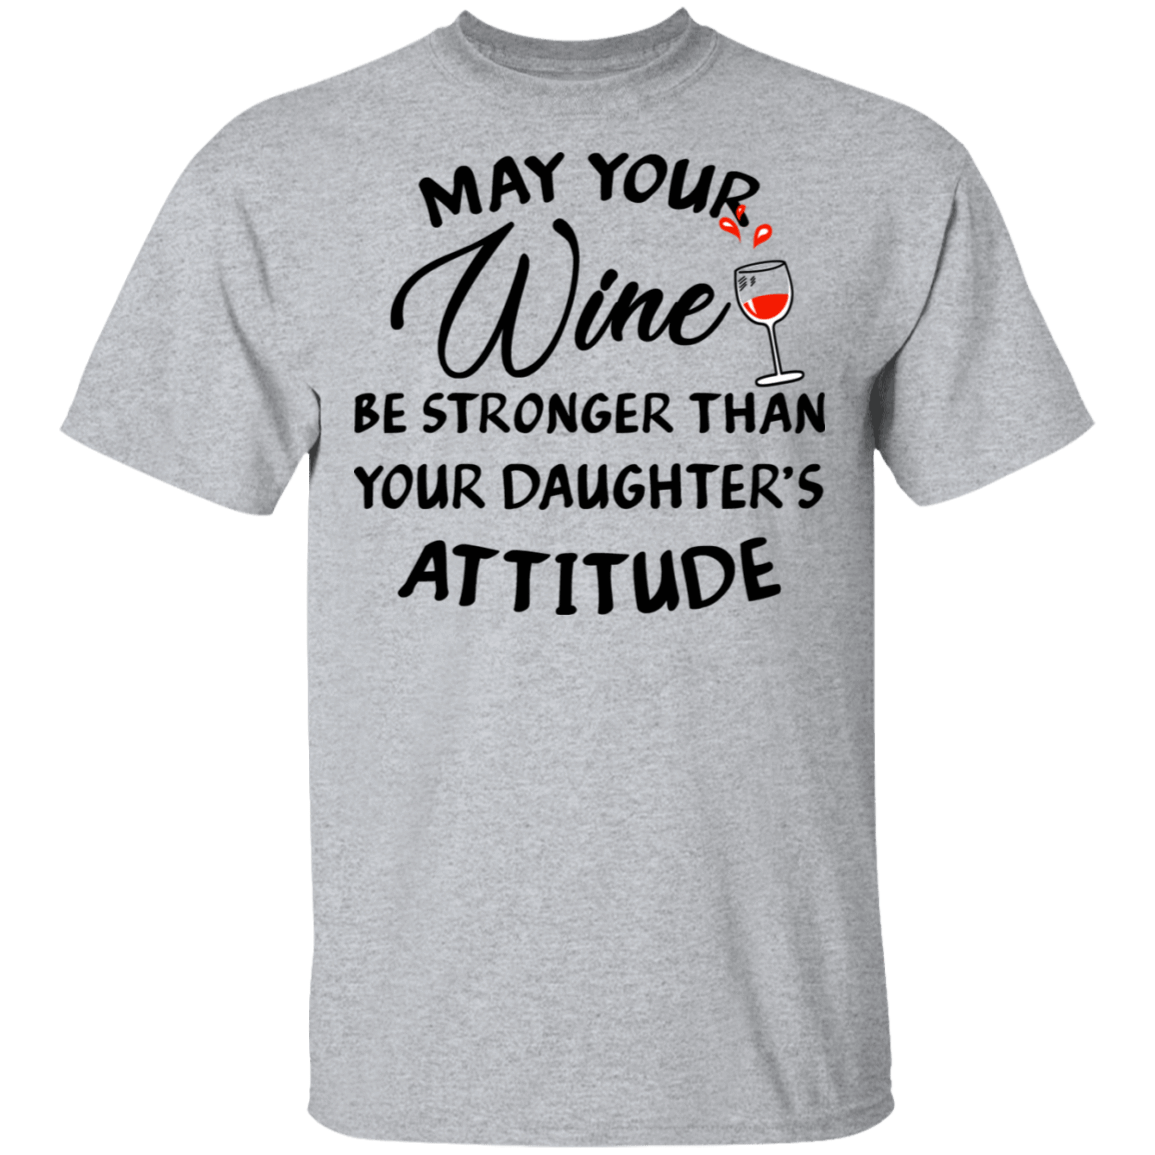 May Your Wine Be Stronger Than Your Daughter's Attitude T-Shirts, Hoodies, Tank 22-115-79820339-254 - Tee Ript